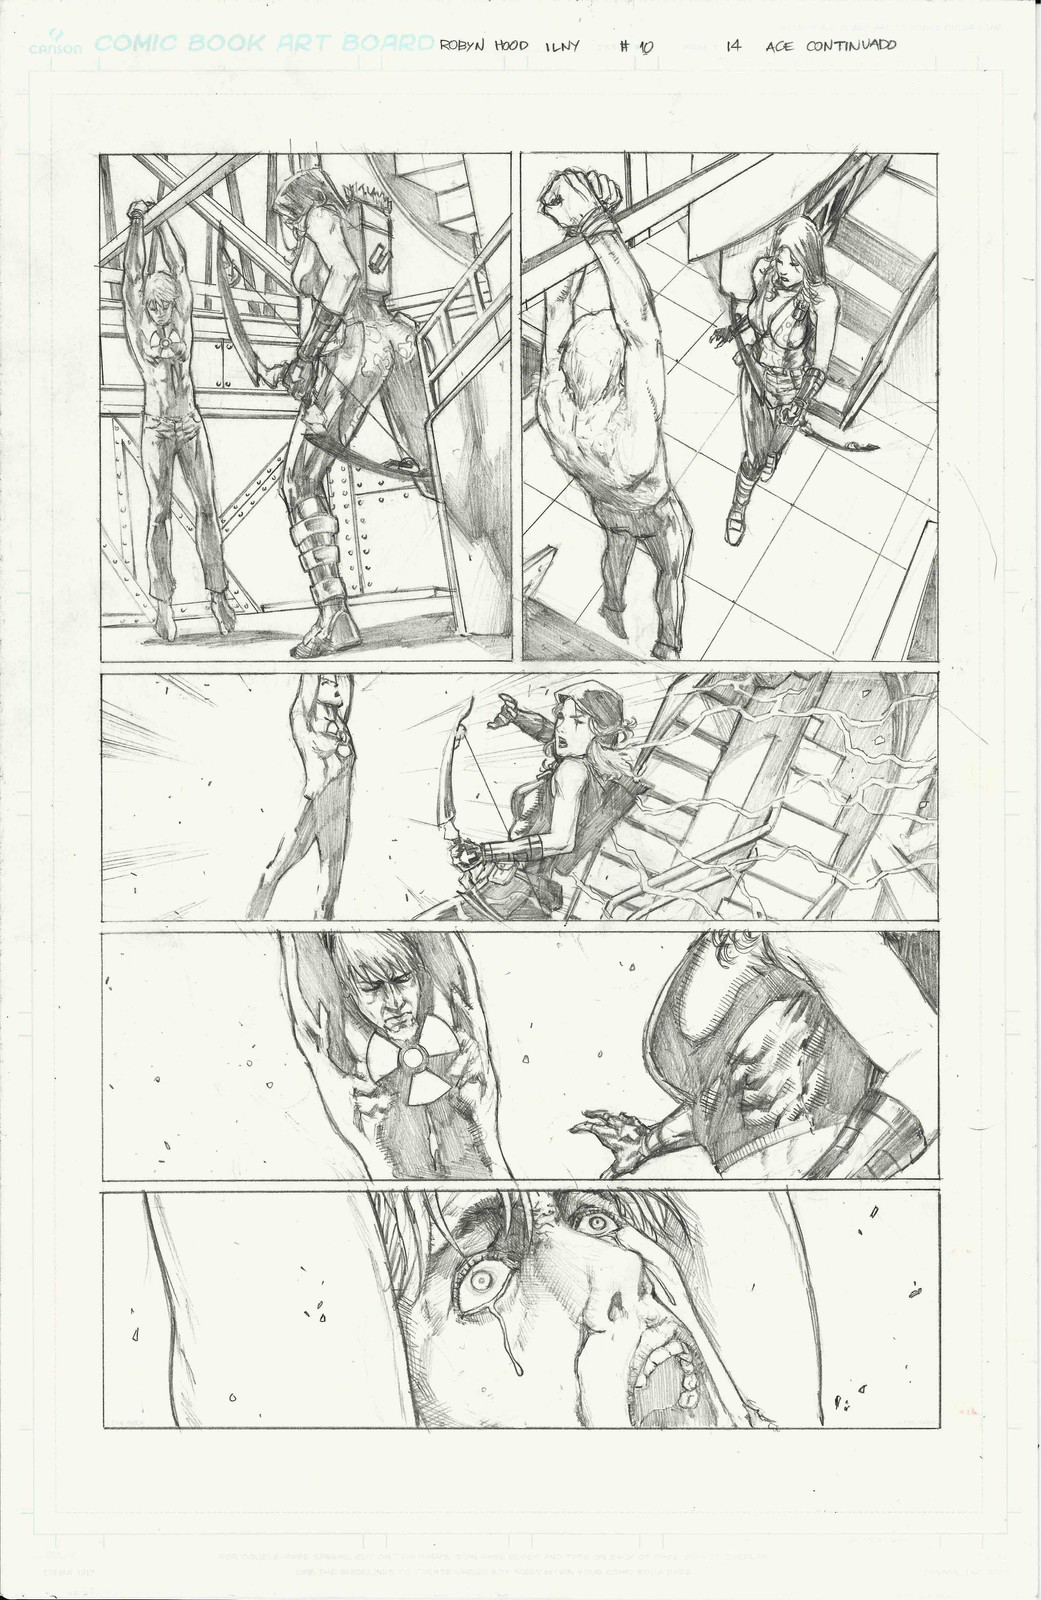 Page 14 of Robyn Hood I Love New York #10 from Zenescope Entertainment.